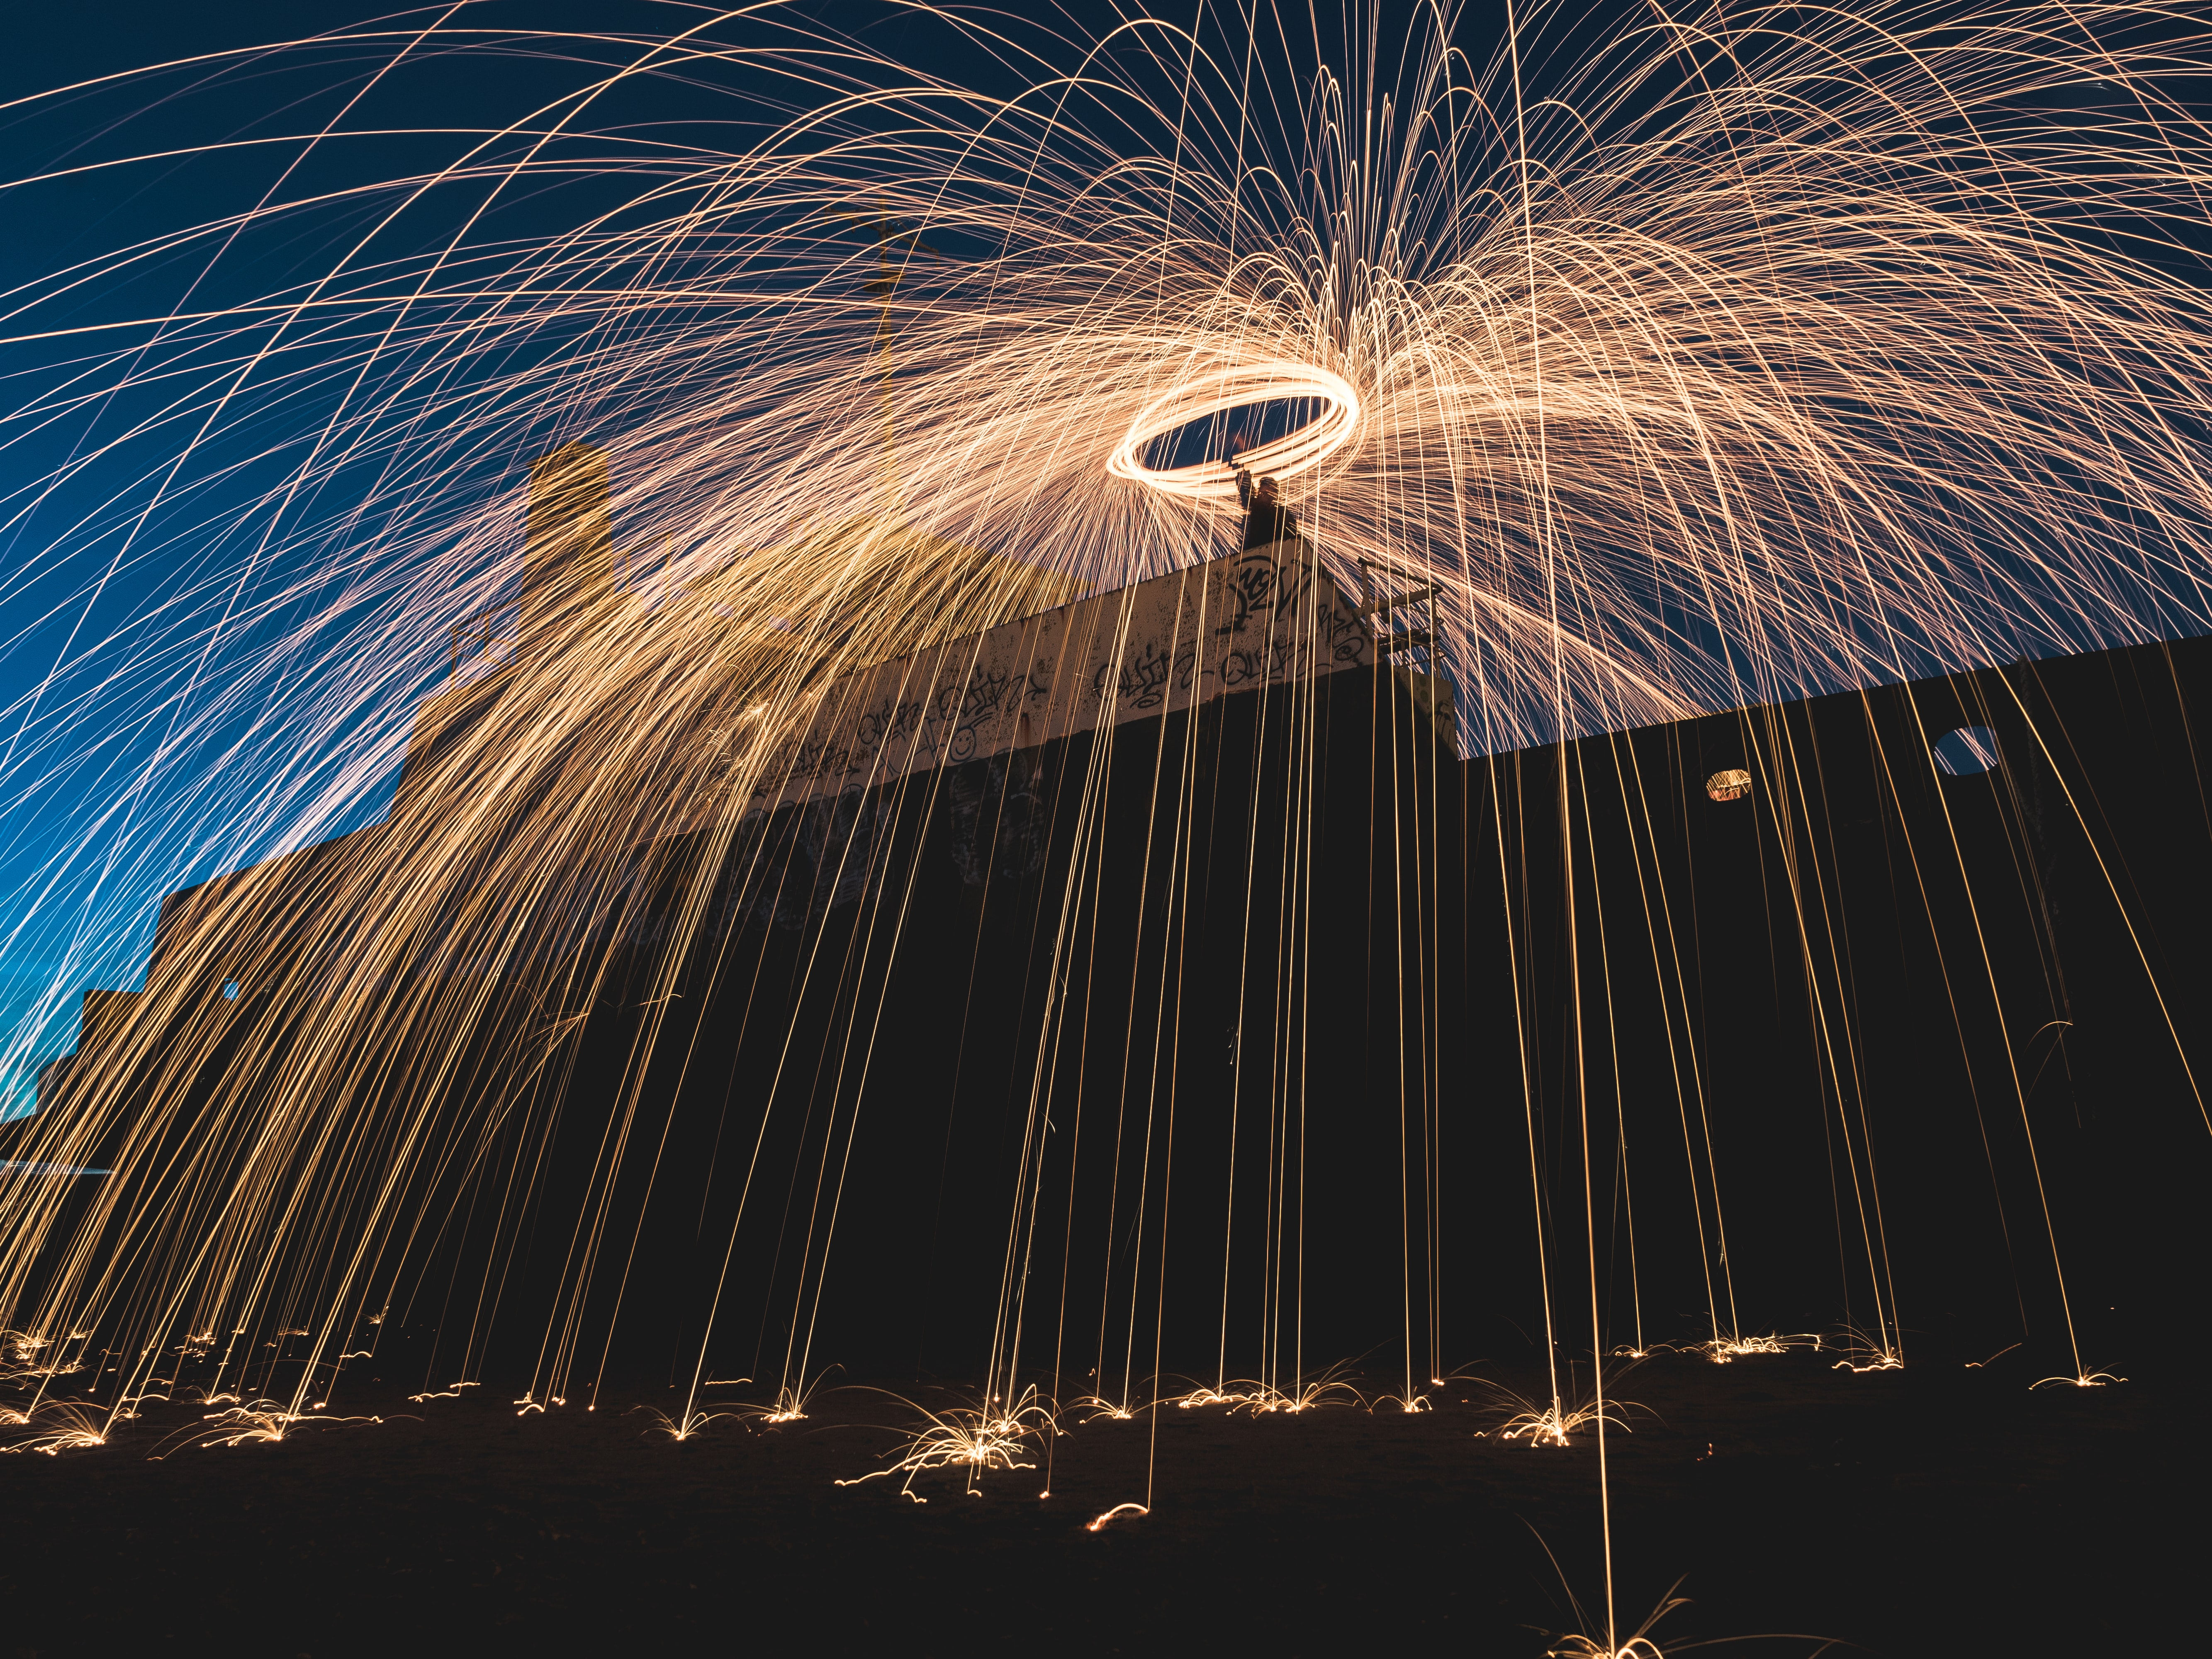 steel wool photography of man